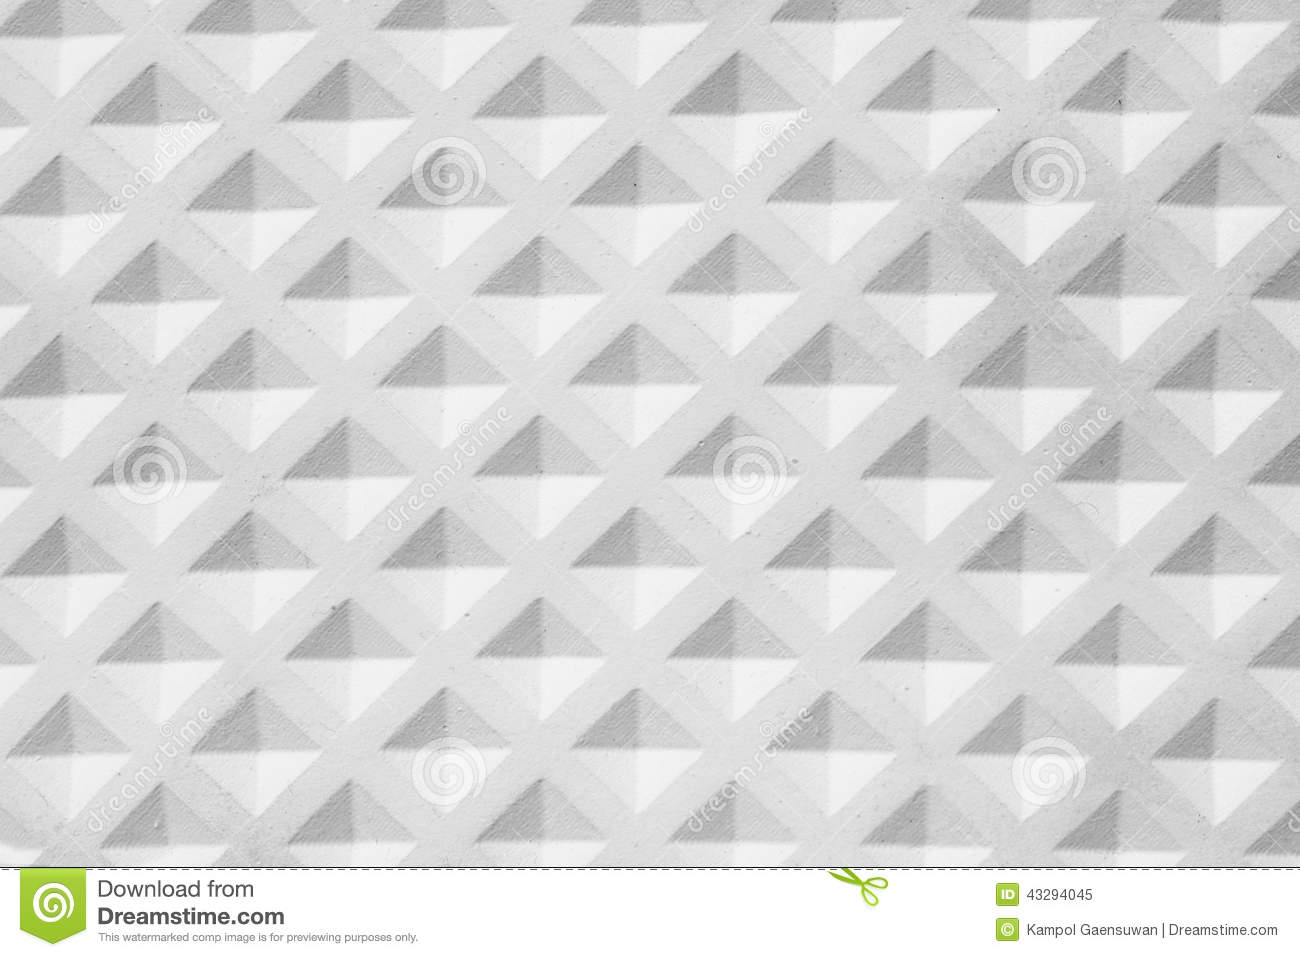 Texture Of White Square Tile Rubber Stock Image Image Of Texture Wallpaper 43294045